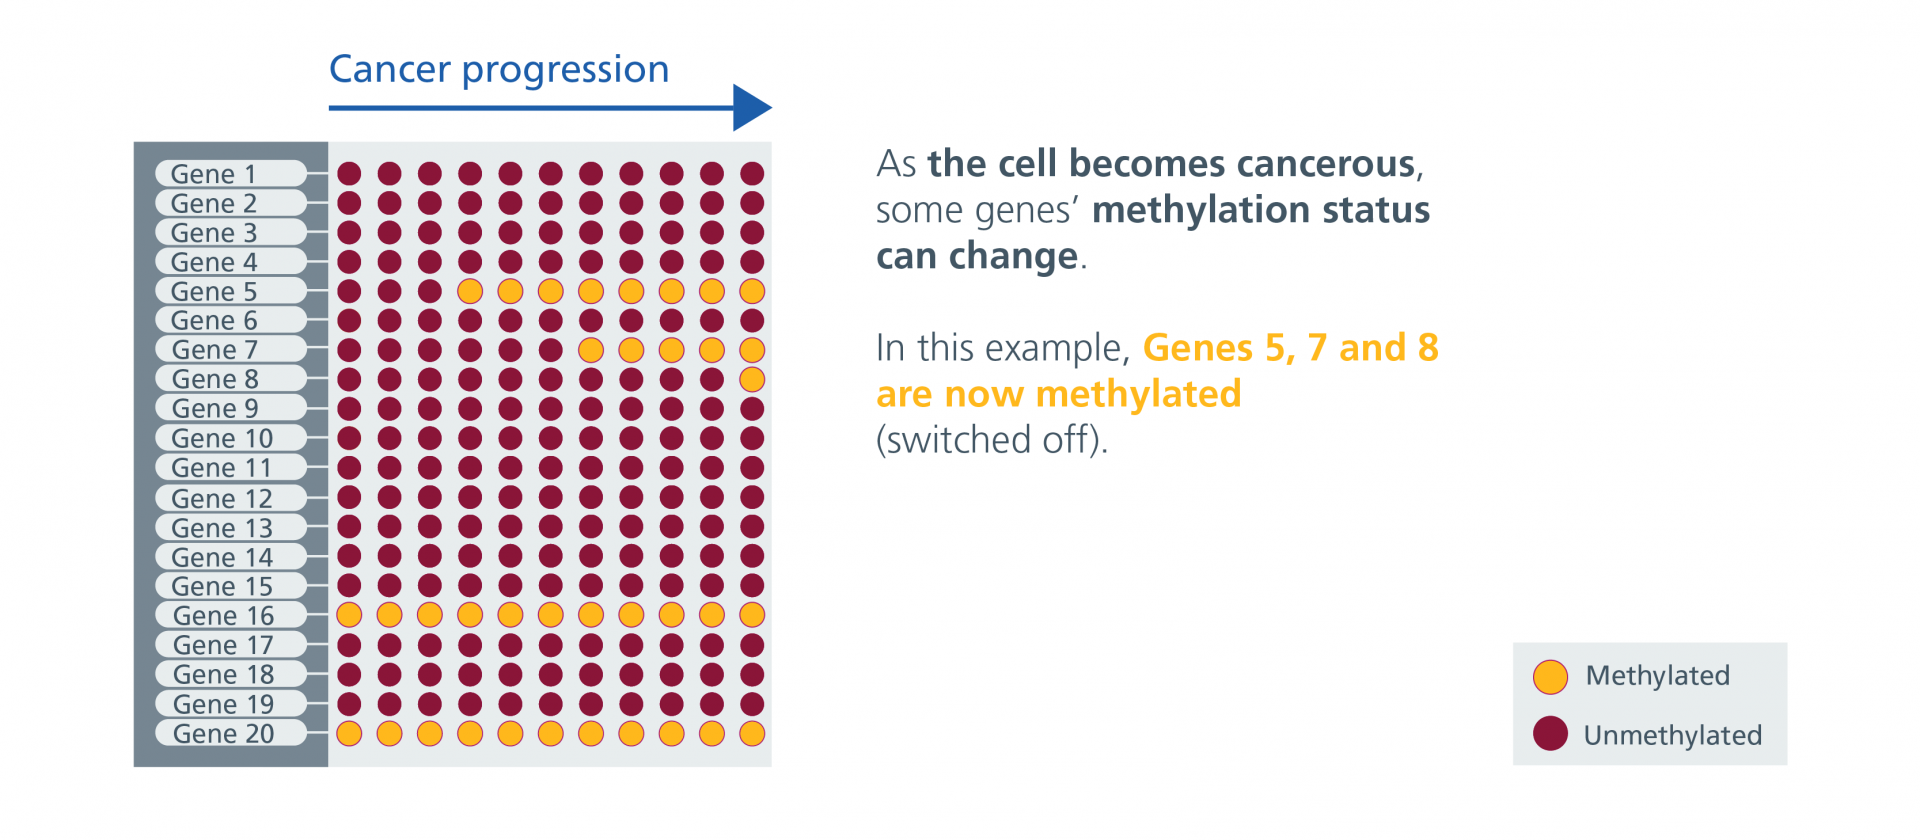 The cell becomes cancerous and the methylation status of some of the 20 genes begins to change. Genes 5, 7 and 8 are now methylated (switched off).